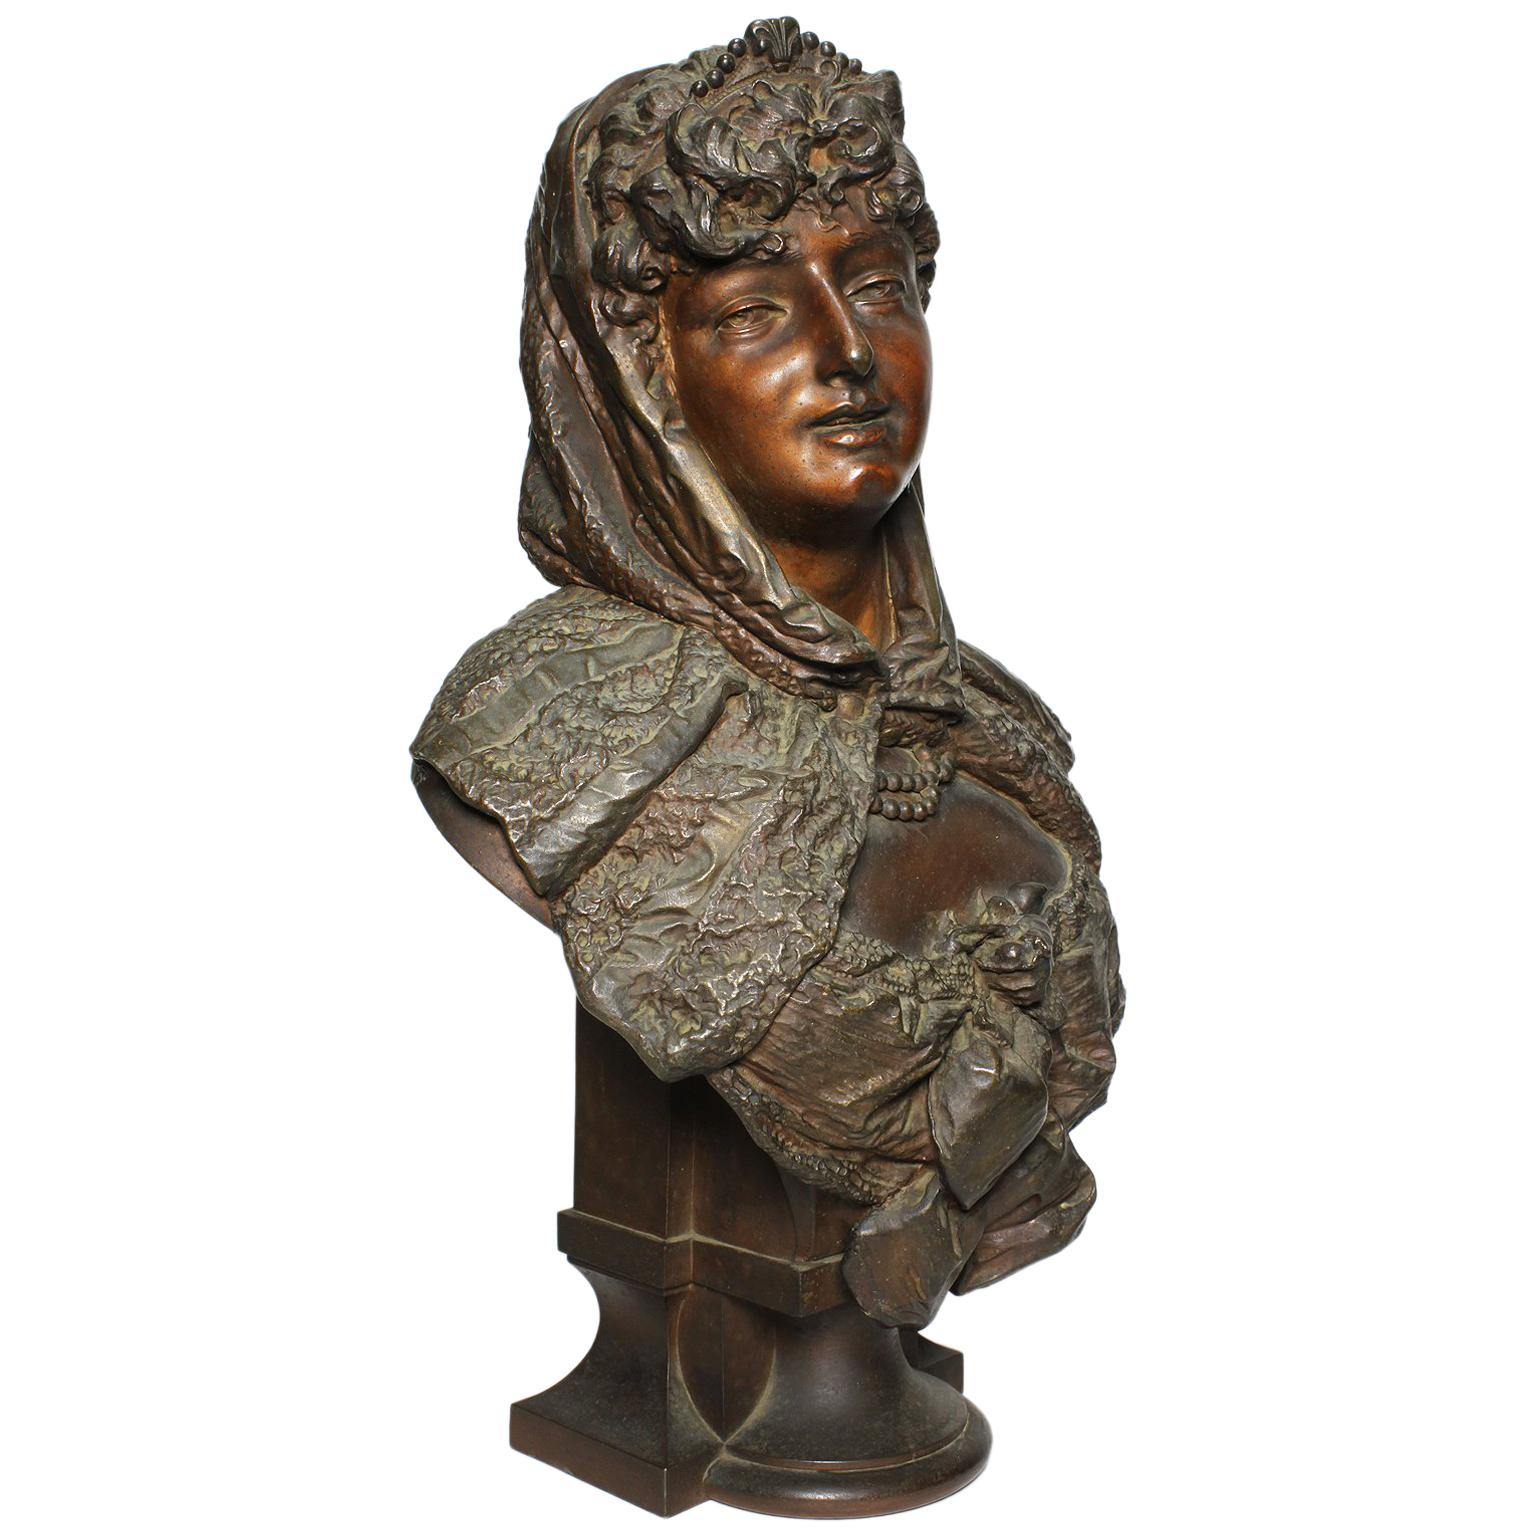 19th Century Patinated Spelter Bust Figure of a Young Girl, Attributed to Hottot